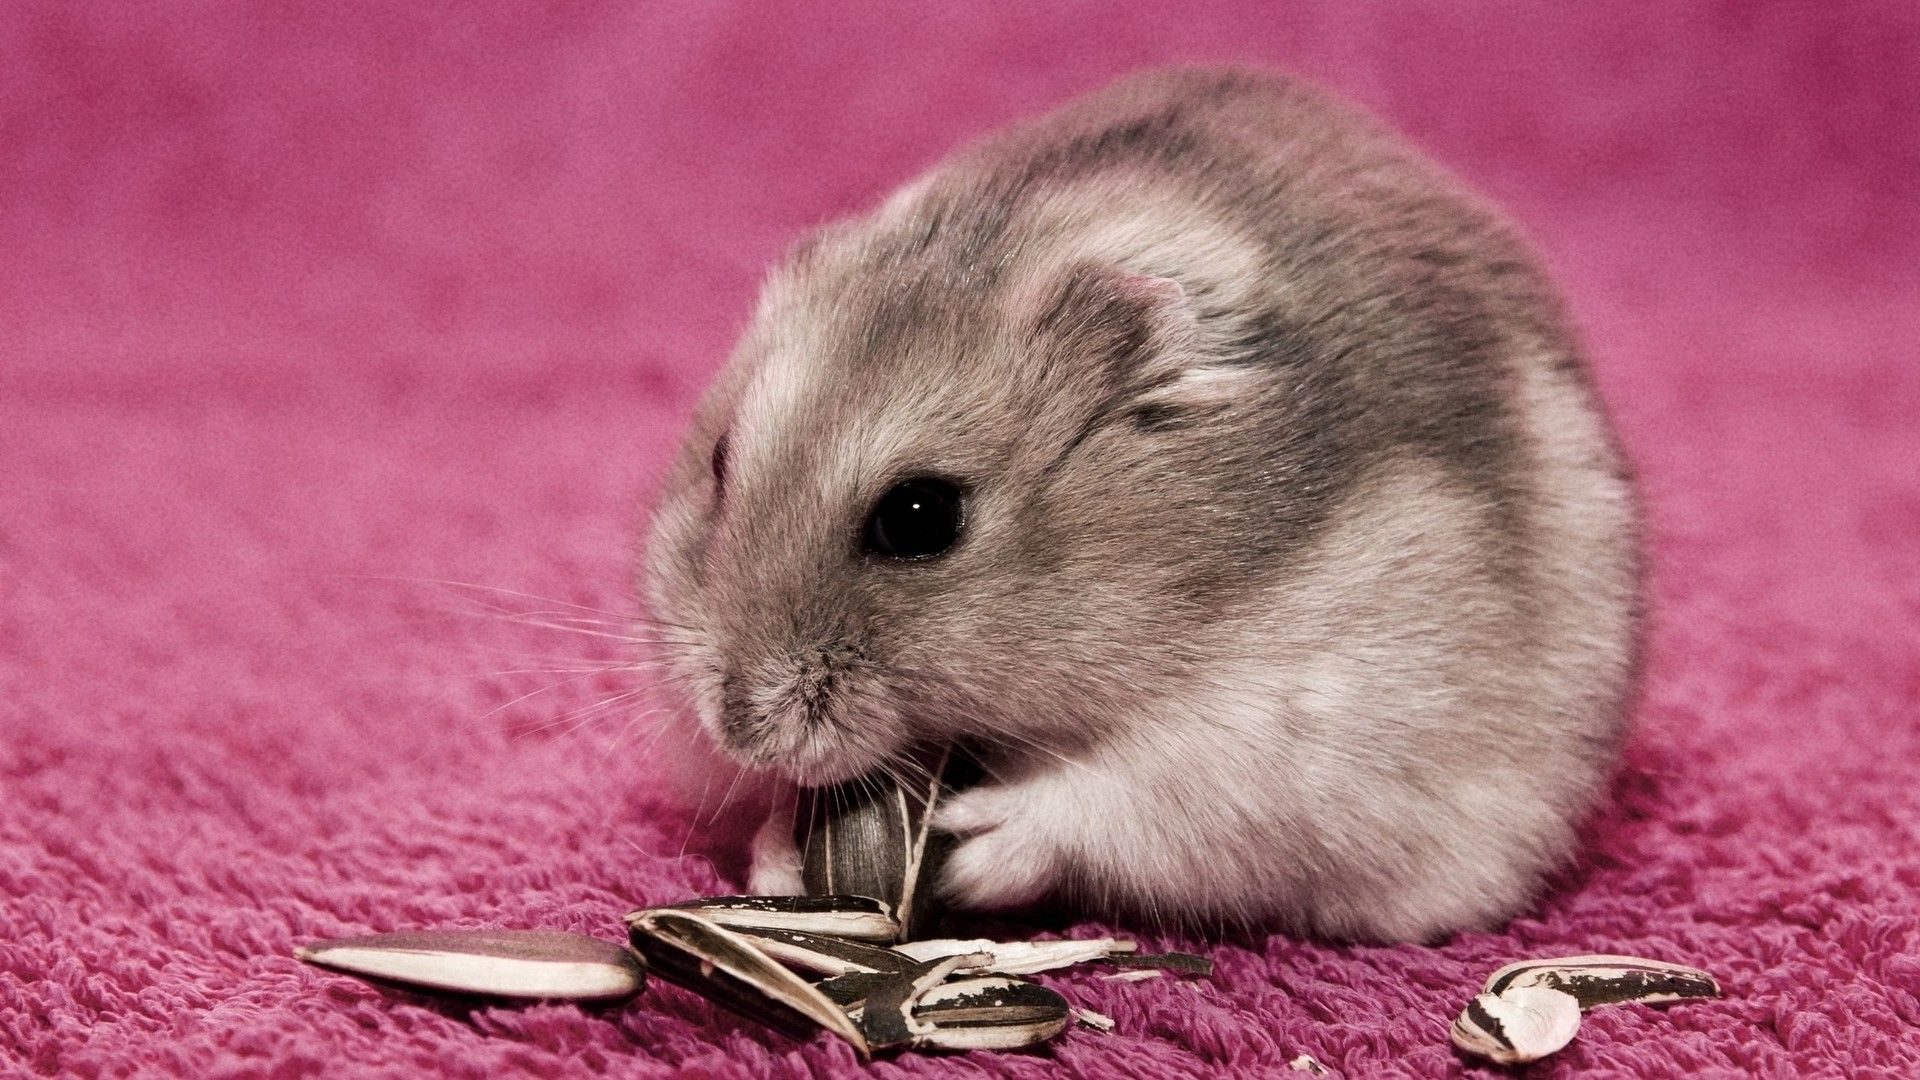 Hamster on a pink carpet wallpaper 15948 1920x1080